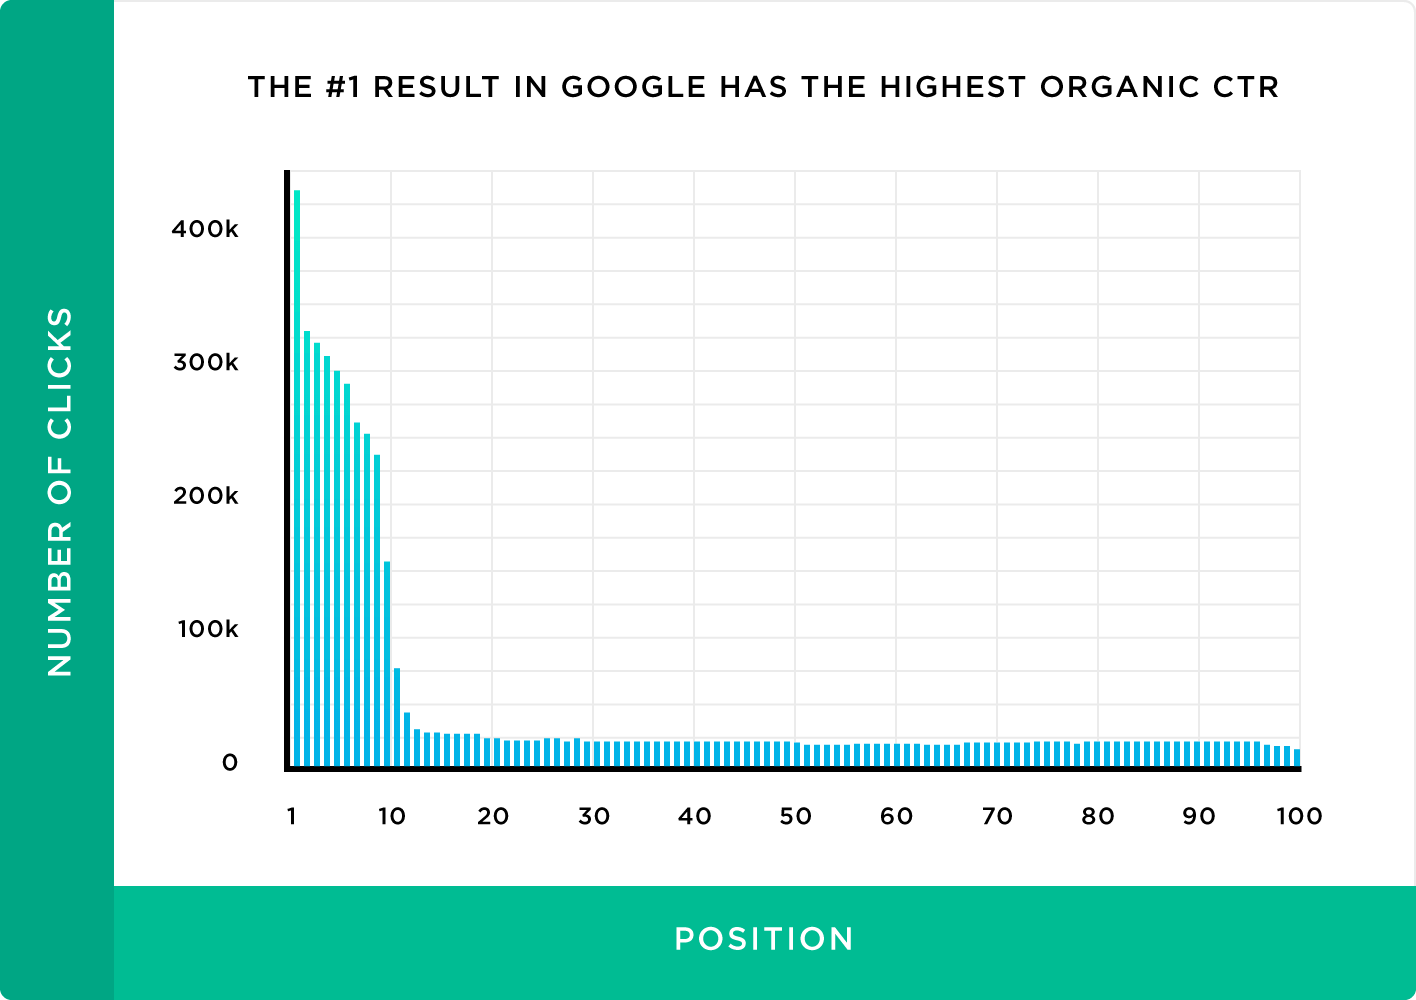 Click through rates for google page 1 search results